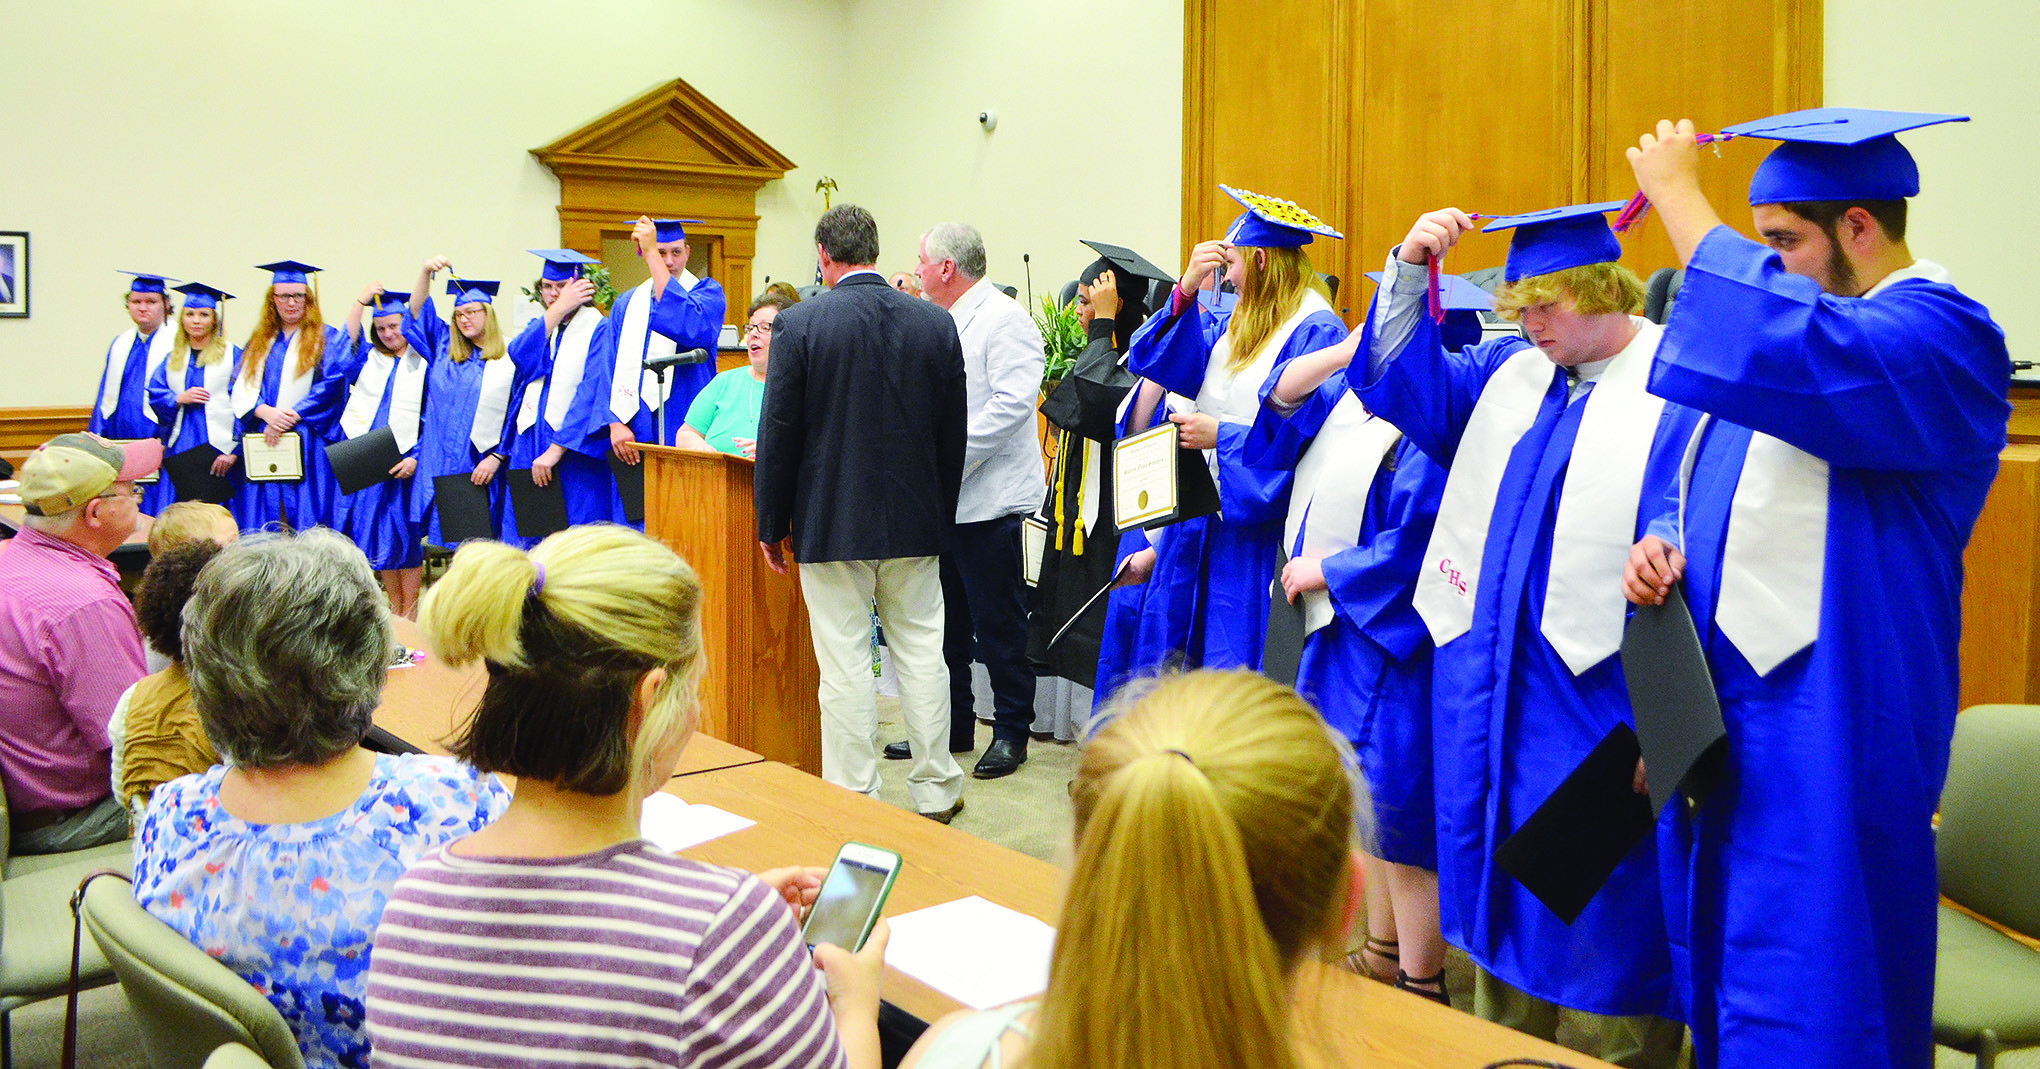 Graduates of the 2018 Hope and Twilight program turn their tassels at a graduation ceremony at the Walker County Board of Education Thursday.